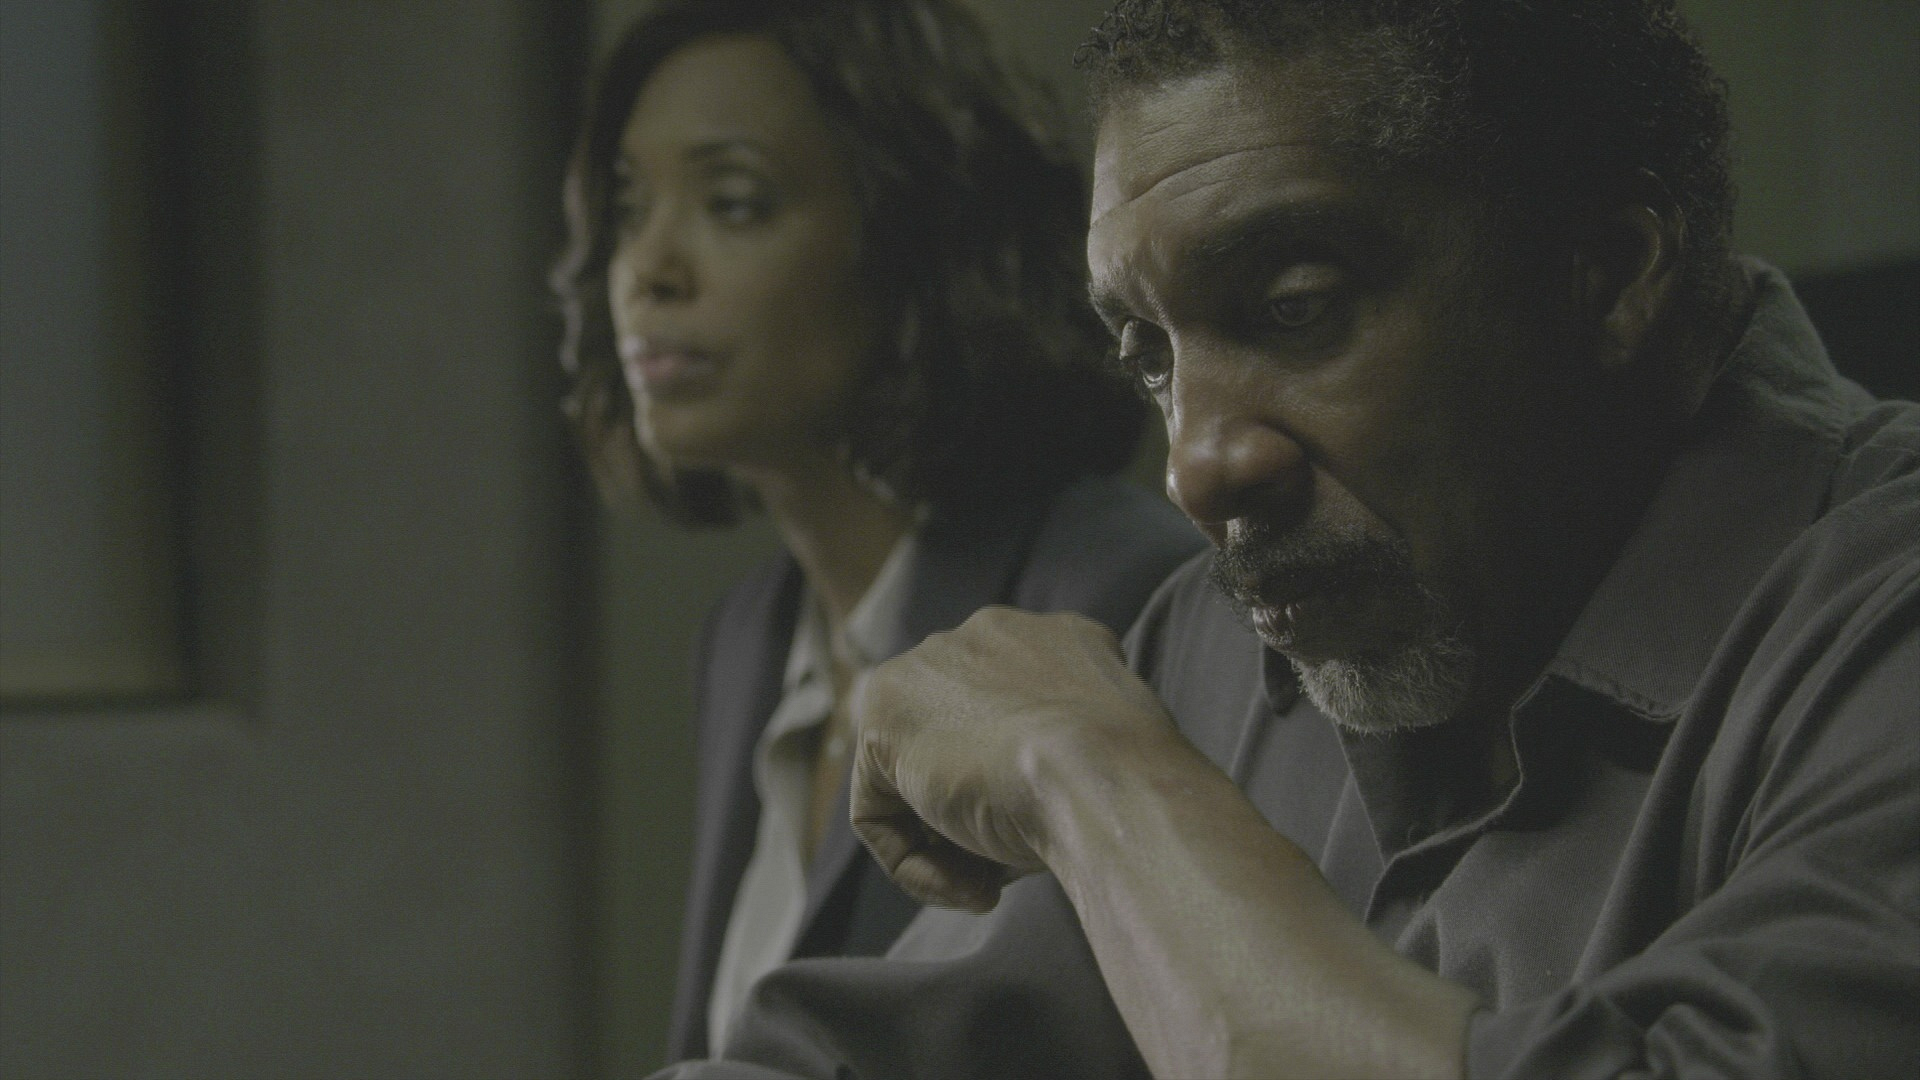 Dr. Lewis and her father sit in silence.